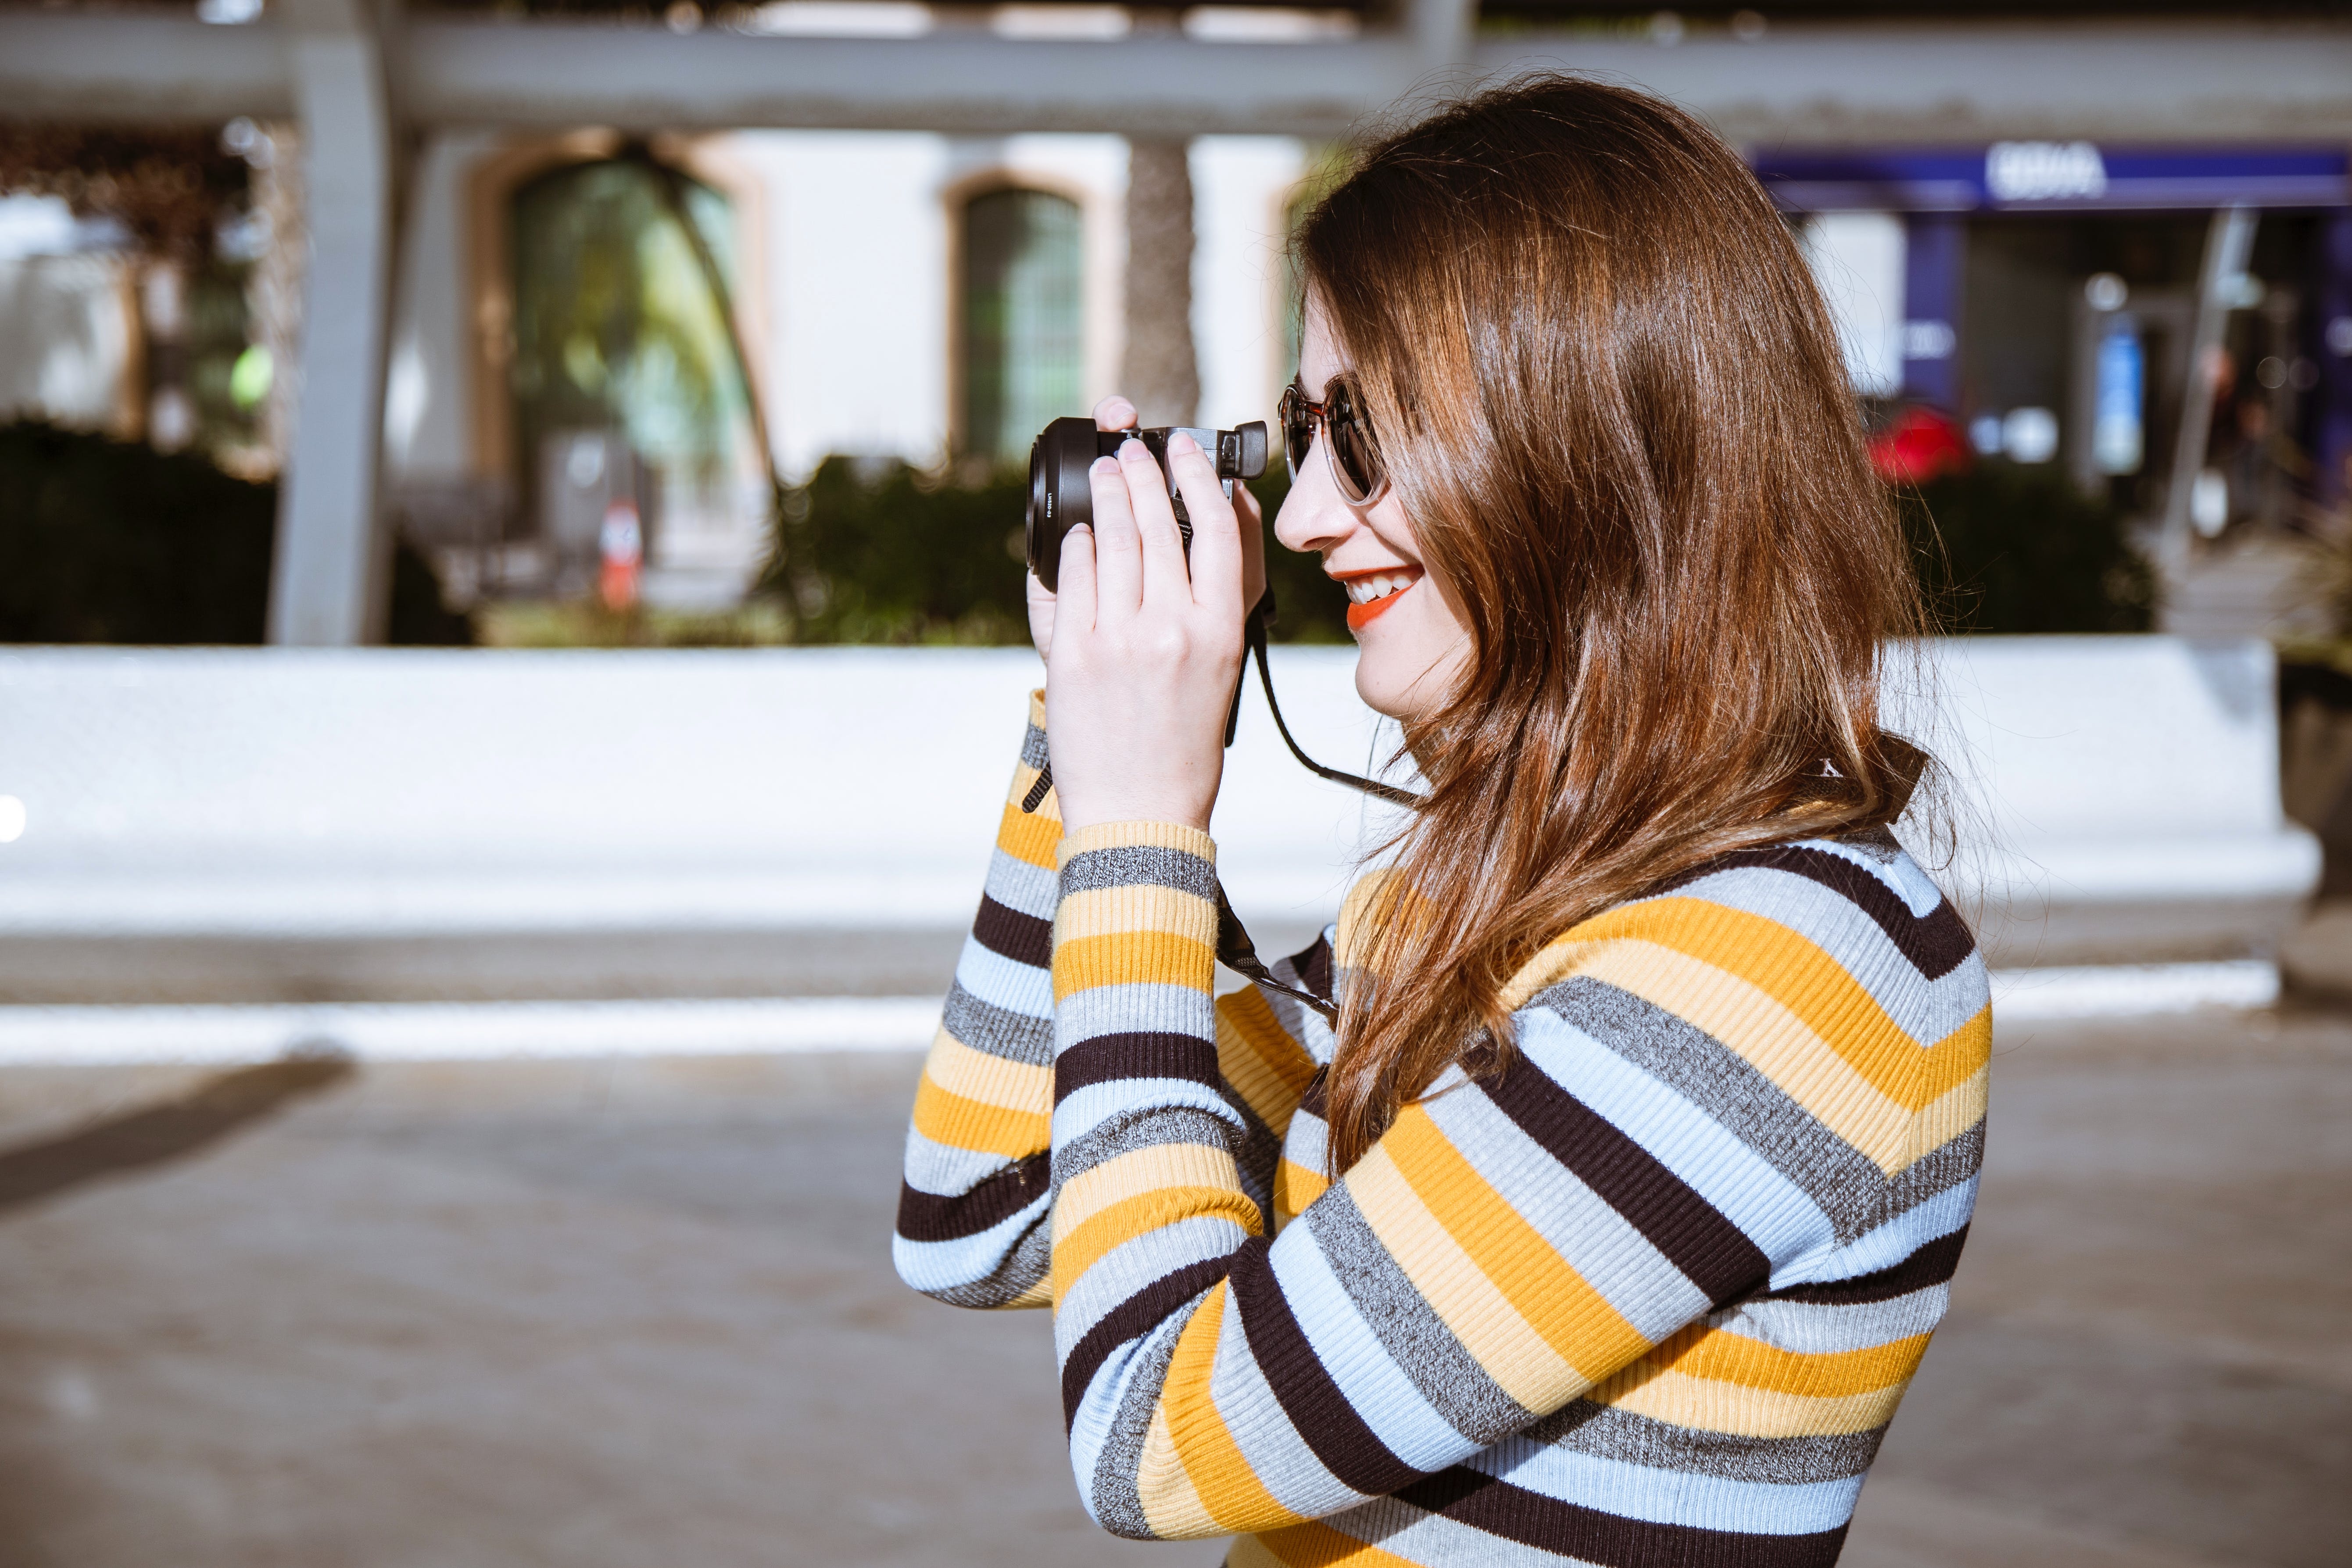 Smiling Woman Taking S Hot With Camera Beside White Building